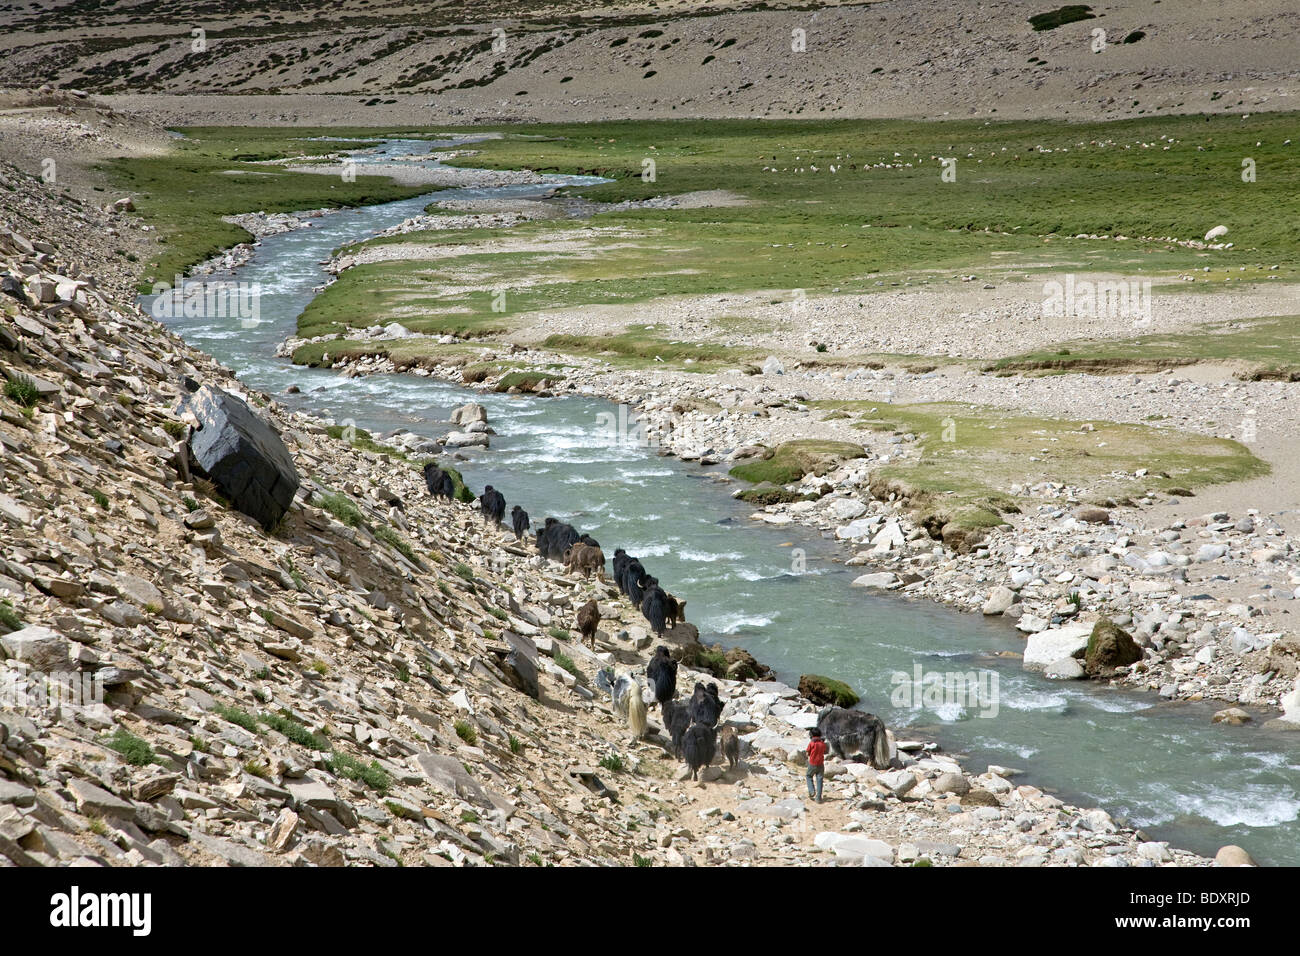 Herd of yaks and young shepherd. Rupsu Valley. Near Korzok village. Ladakh. India - Stock Image